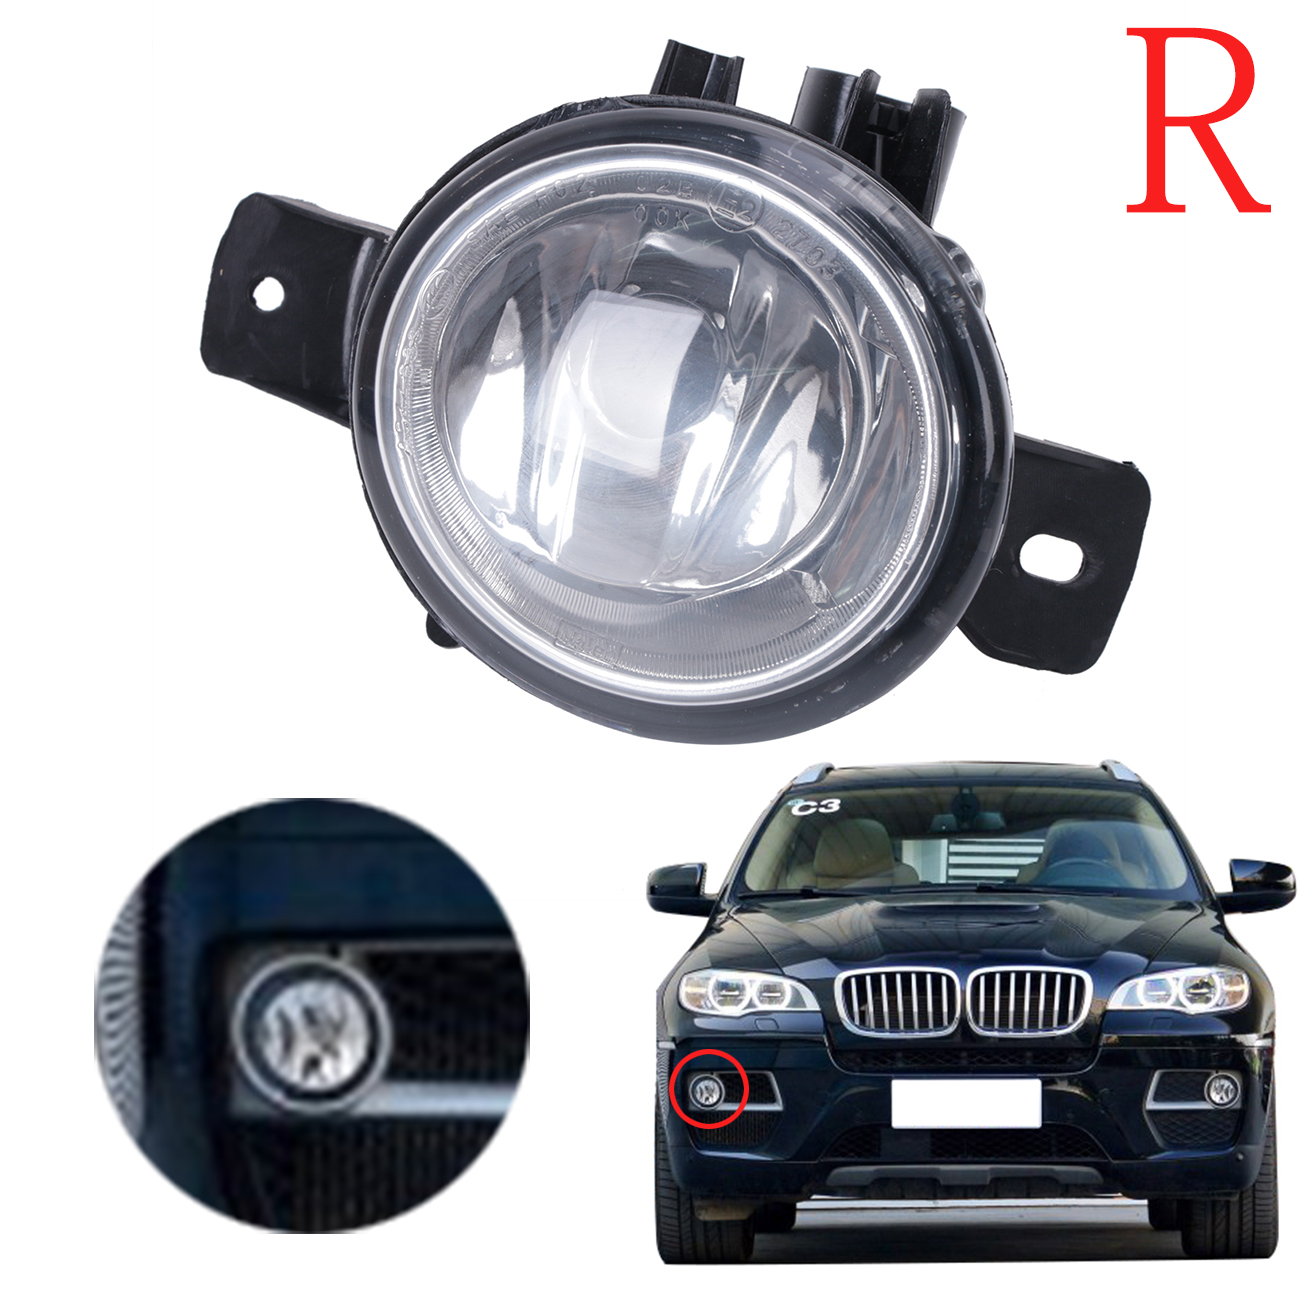 Right Side Car Front Bumper Fog Light Foglamp For BMW E71 E72 X6 2008 2009 2010 2011 2012 2013 Part Number 63177187630 #W090-R for vw golf 6 gti 2009 2010 2011 jetta 6 gli 2011 2012 2013 2014 new front right halogen new fog lamp fog light car styling